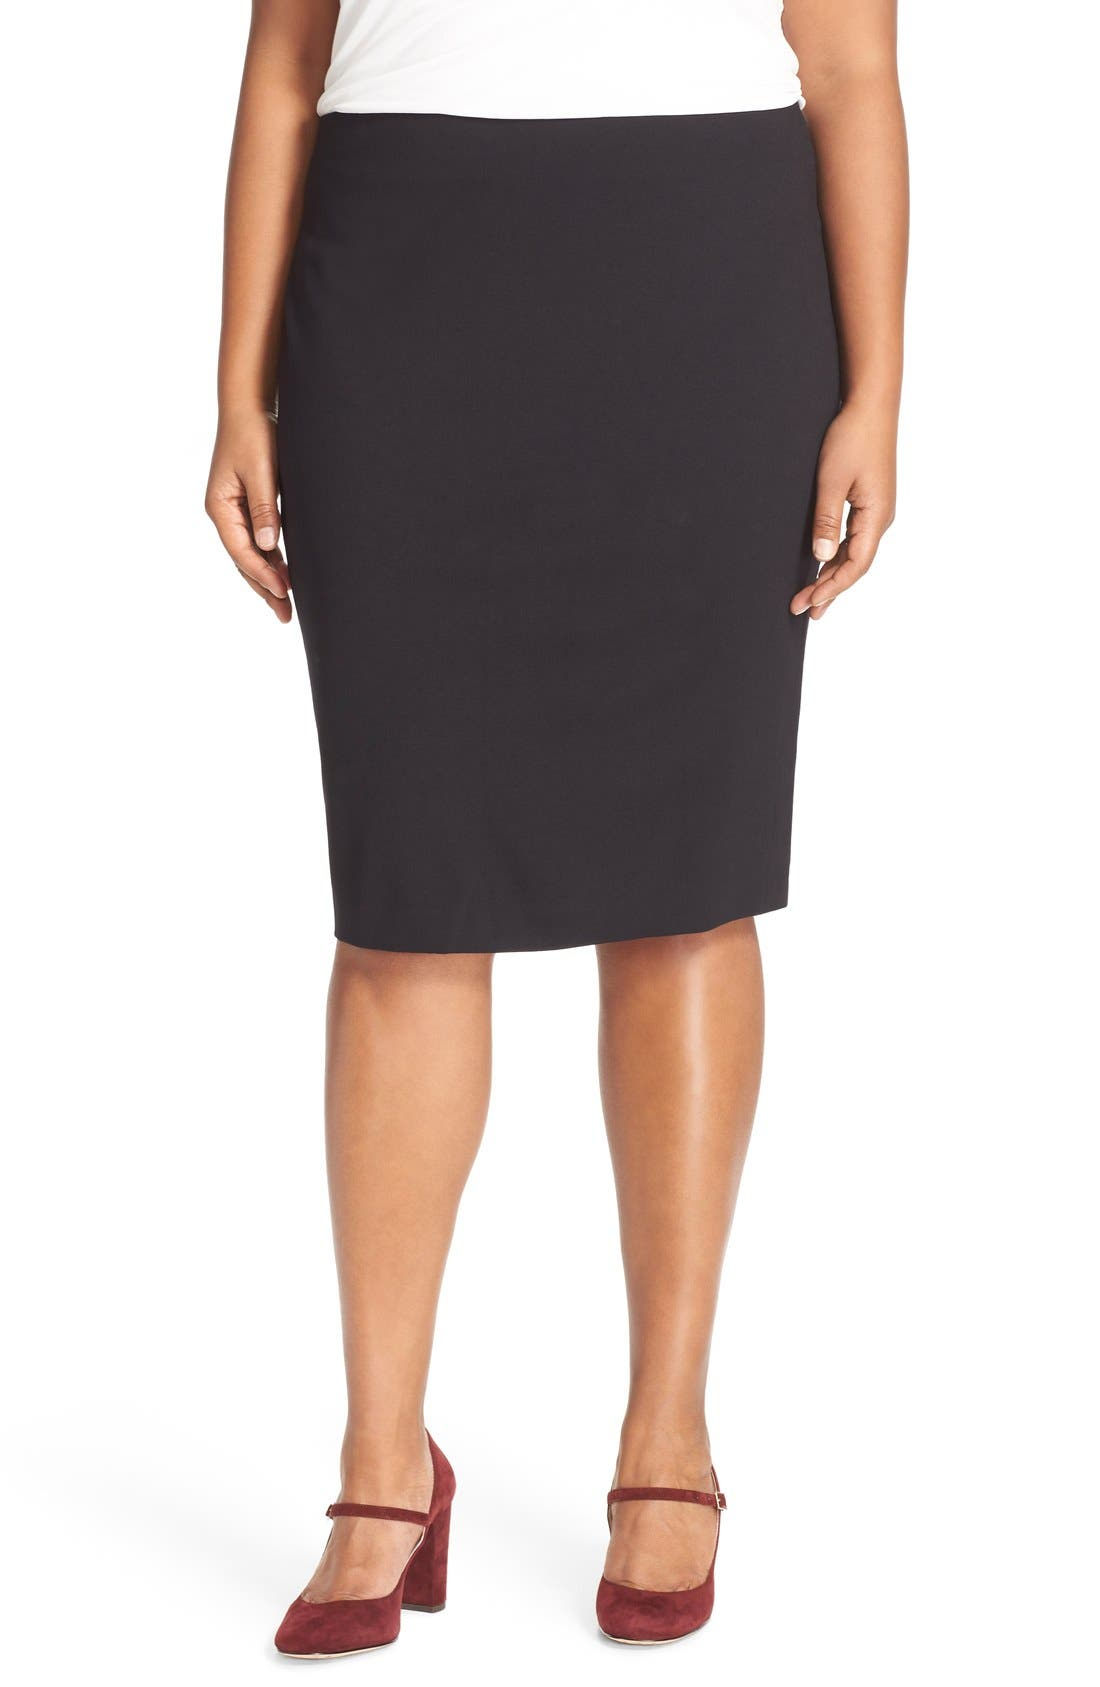 Alternate Image 1 Selected - Vince Camuto Ponte Knit Skirt (Plus Size)